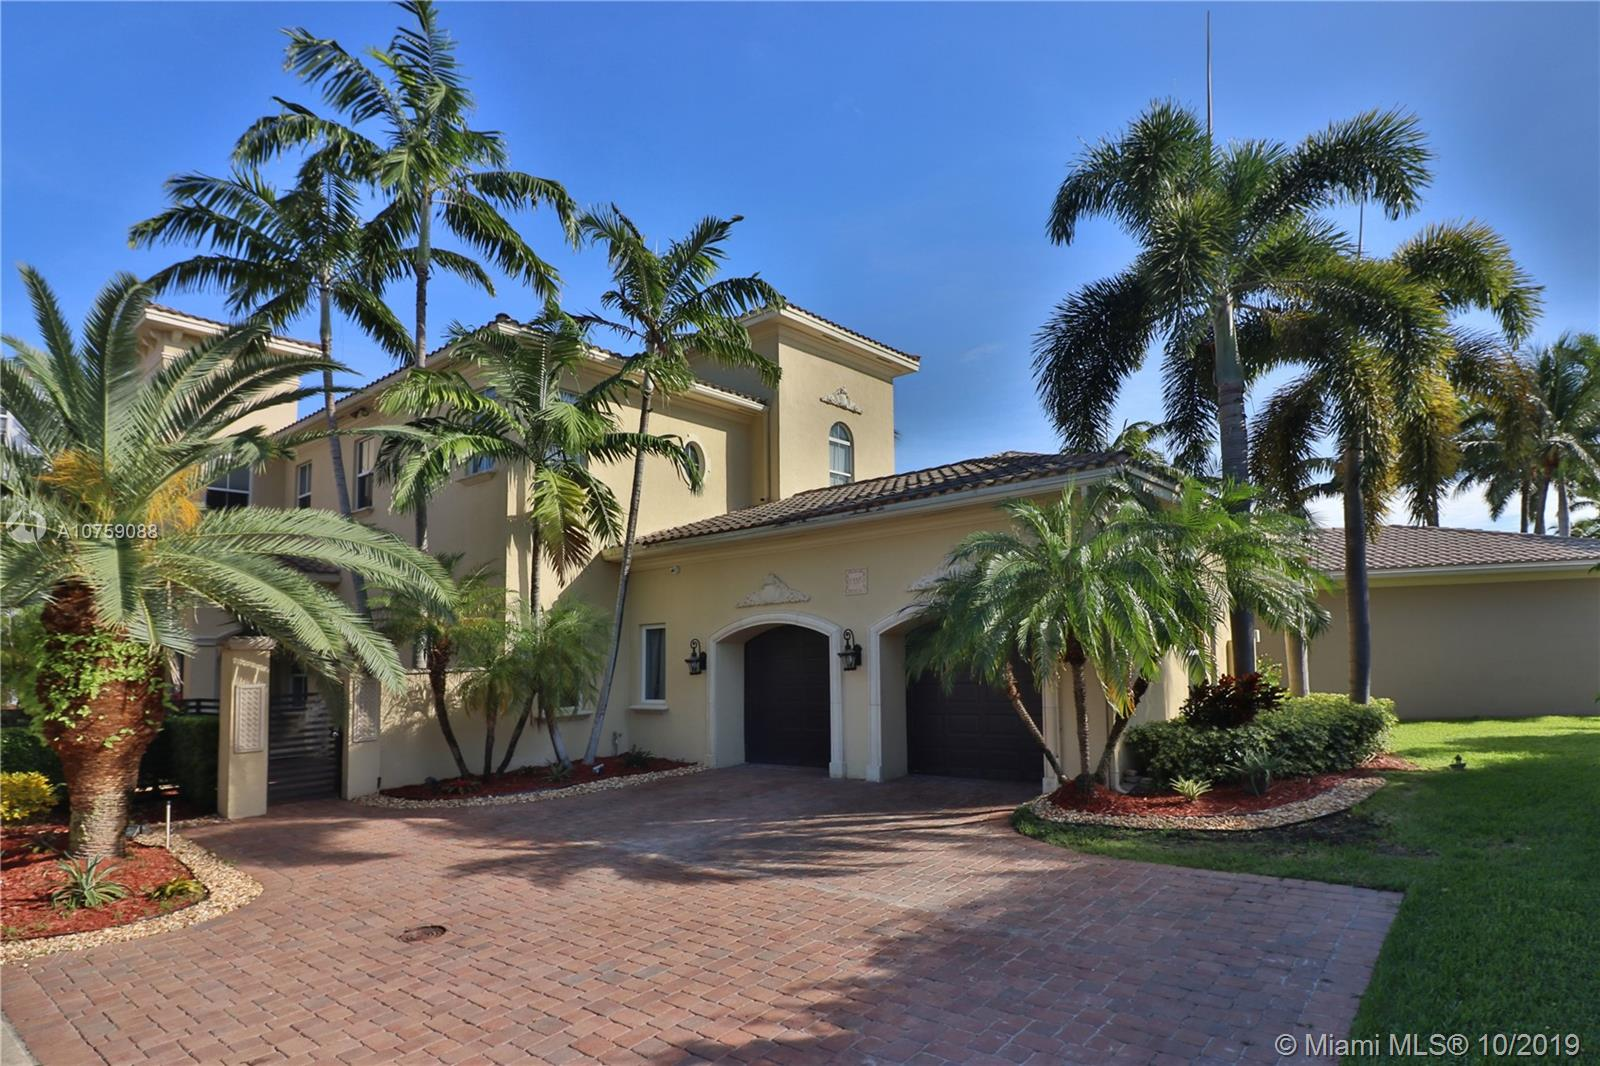 """WATERFRONT ESTATE MODERN ELEGANT 2 STORY HOME IN PRESTIGIOUS GUARD GATED COMMUNITY. BEAUTIFUL MOVE IN CONDITION WITH 24/7 SECURITY PATROL IN HARBOR ISLANDS.  RARE OPPORTUNITY.  SPECTACULAR PANORAMIC INTRACOASTAL VIEWS AS SOON AS YOU ENTER. 6 BEDROOMS WITH """"EN SUITE"""" BATHS. MARBLE FLOORS THROUGHOUT LIVING AREA, FORMAL DINING ROOM, SPACIOUS LIVING ROOM WITH WOOD BURNING FIREPLACE.  FAMILY ROOM OPENS TO A NEW GOURMET CHEF'S KITCHEN. TOP OF THE LINE APPLIANCES, CENTER ISLAND, WOOD CABINETRY DESIGNED WITH THE FINEST OF FINISHES.  4 BEDROOMS UPSTAIRS PLUS AN OFFICE/SITTING ROOM IN MASTER BEDROOM WITH PRIVATE BALCONY & SPIRAL STAIRCASE LEADING TO THE POOL OVERLOOKING THE INTRACOASTAL. PRIVATE DOCK CAN ACCOMMODATE A 30-35 FT. YACHT PLUS 2 HYDRO LIFTS EQUIPPED FOR A YACHT & JET SKI. ORIGINAL OWNER."""